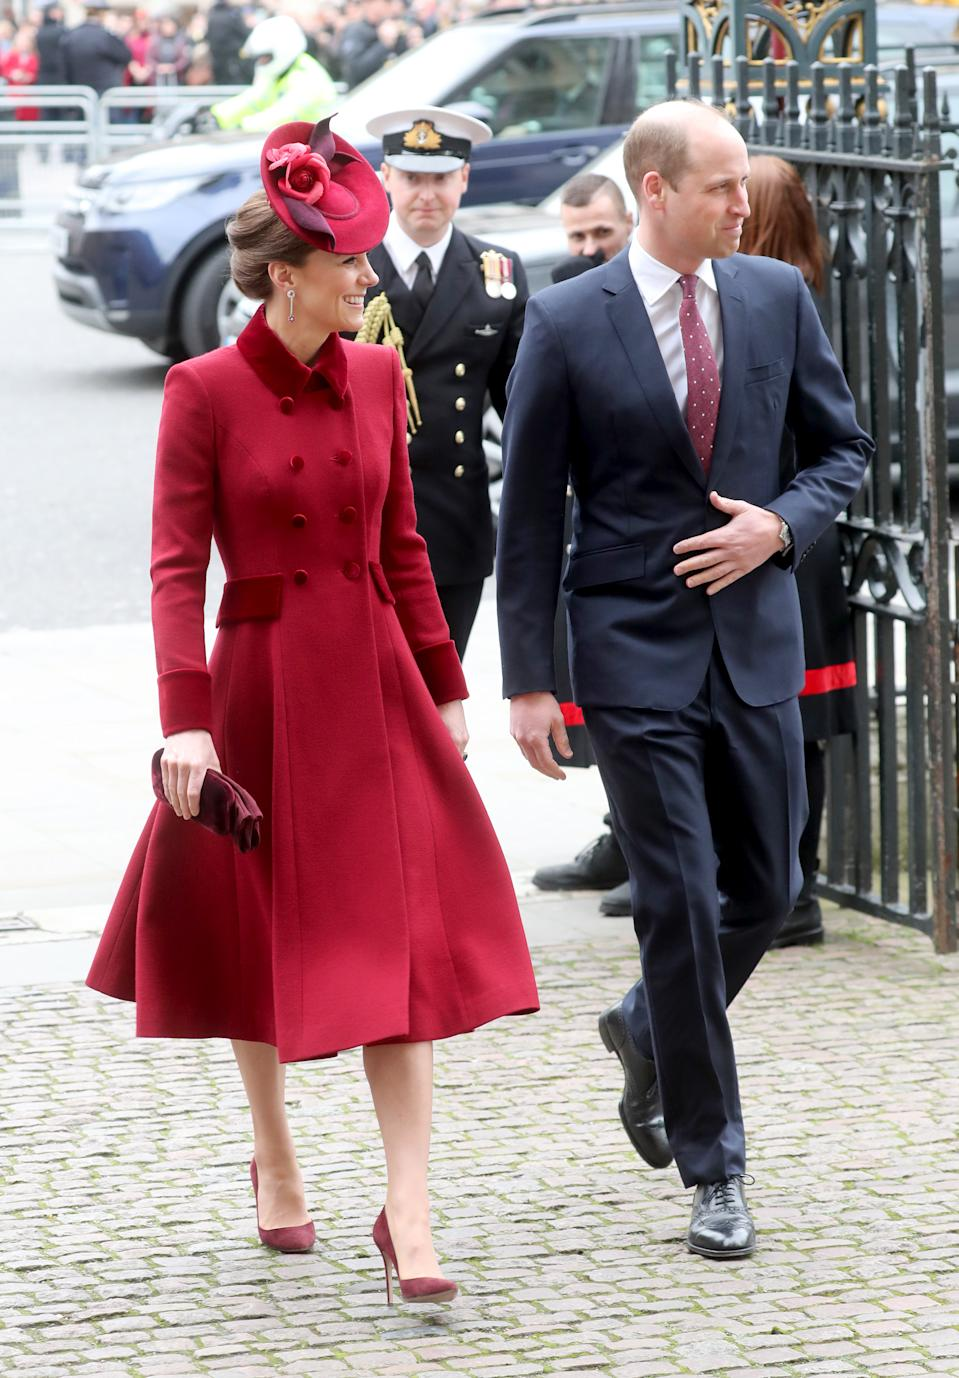 LONDON, ENGLAND - MARCH 09: Catherine, Duchess of Cambridge and Prince William, Duke of Cambridge attend the Commonwealth Day Service 2020 at Westminster Abbey on March 09, 2020 in London, England. The Commonwealth represents 2.4 billion people and 54 countries, working in collaboration towards shared economic, environmental, social and democratic goals. (Photo by Chris Jackson/Getty Images)